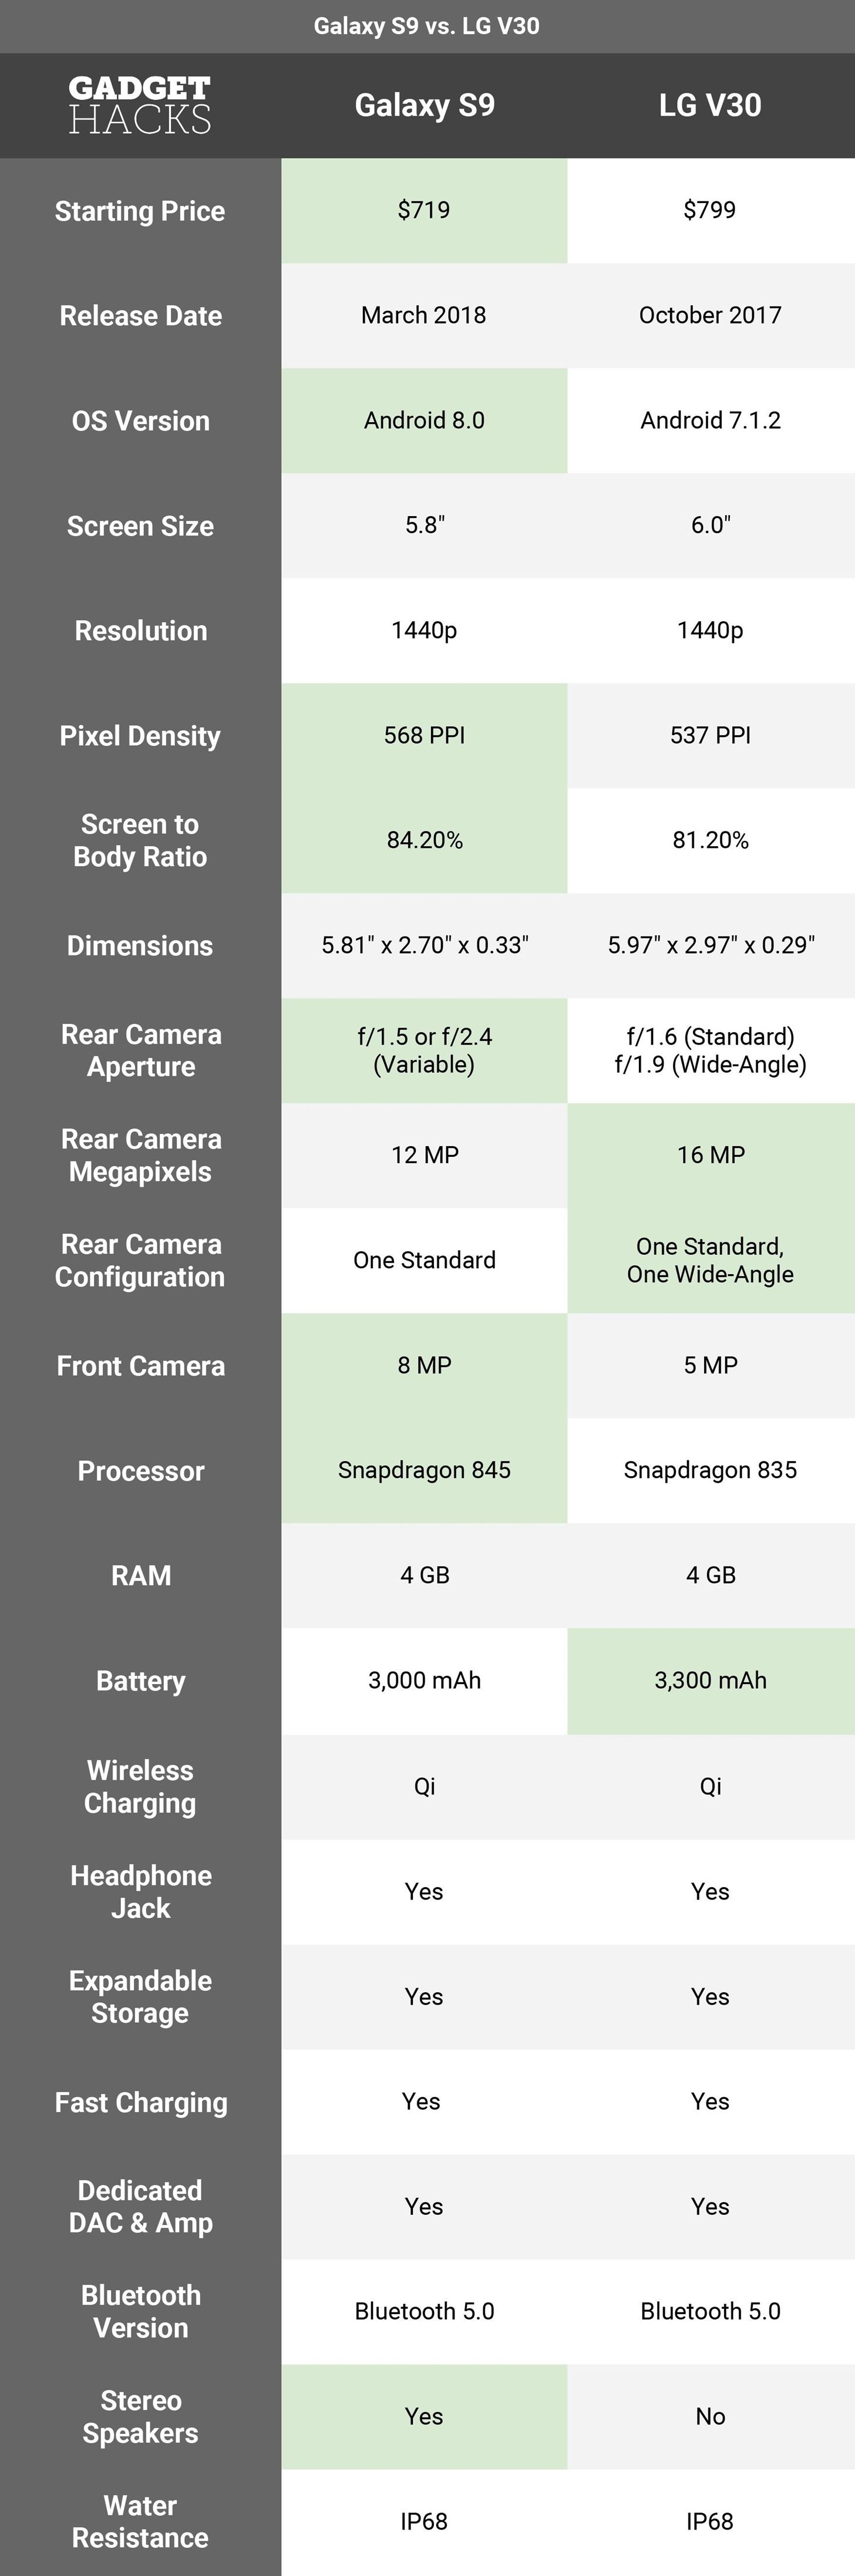 Samsung vs. LG: Comparing Specs for the Galaxy S9 & the LG V30